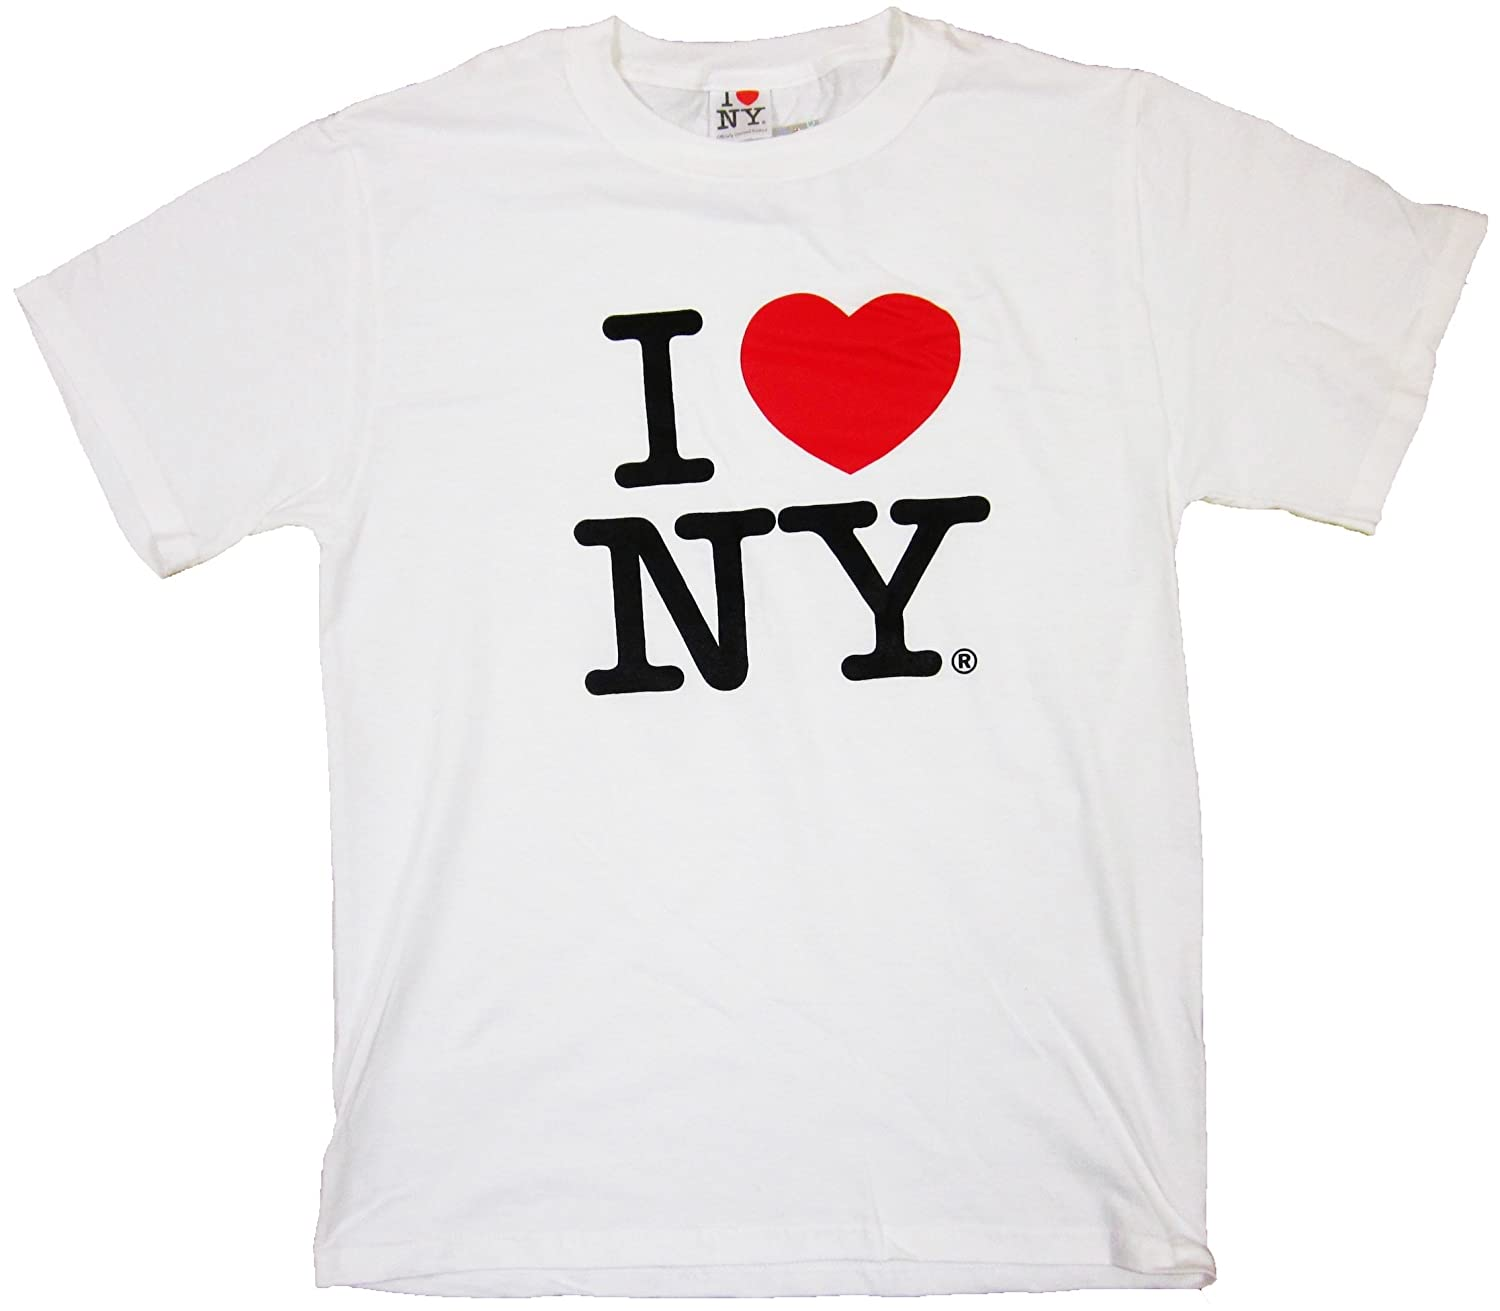 c0959d96b Amazon.com: I Love Ny T-shirt- Adult Medium: Clothing